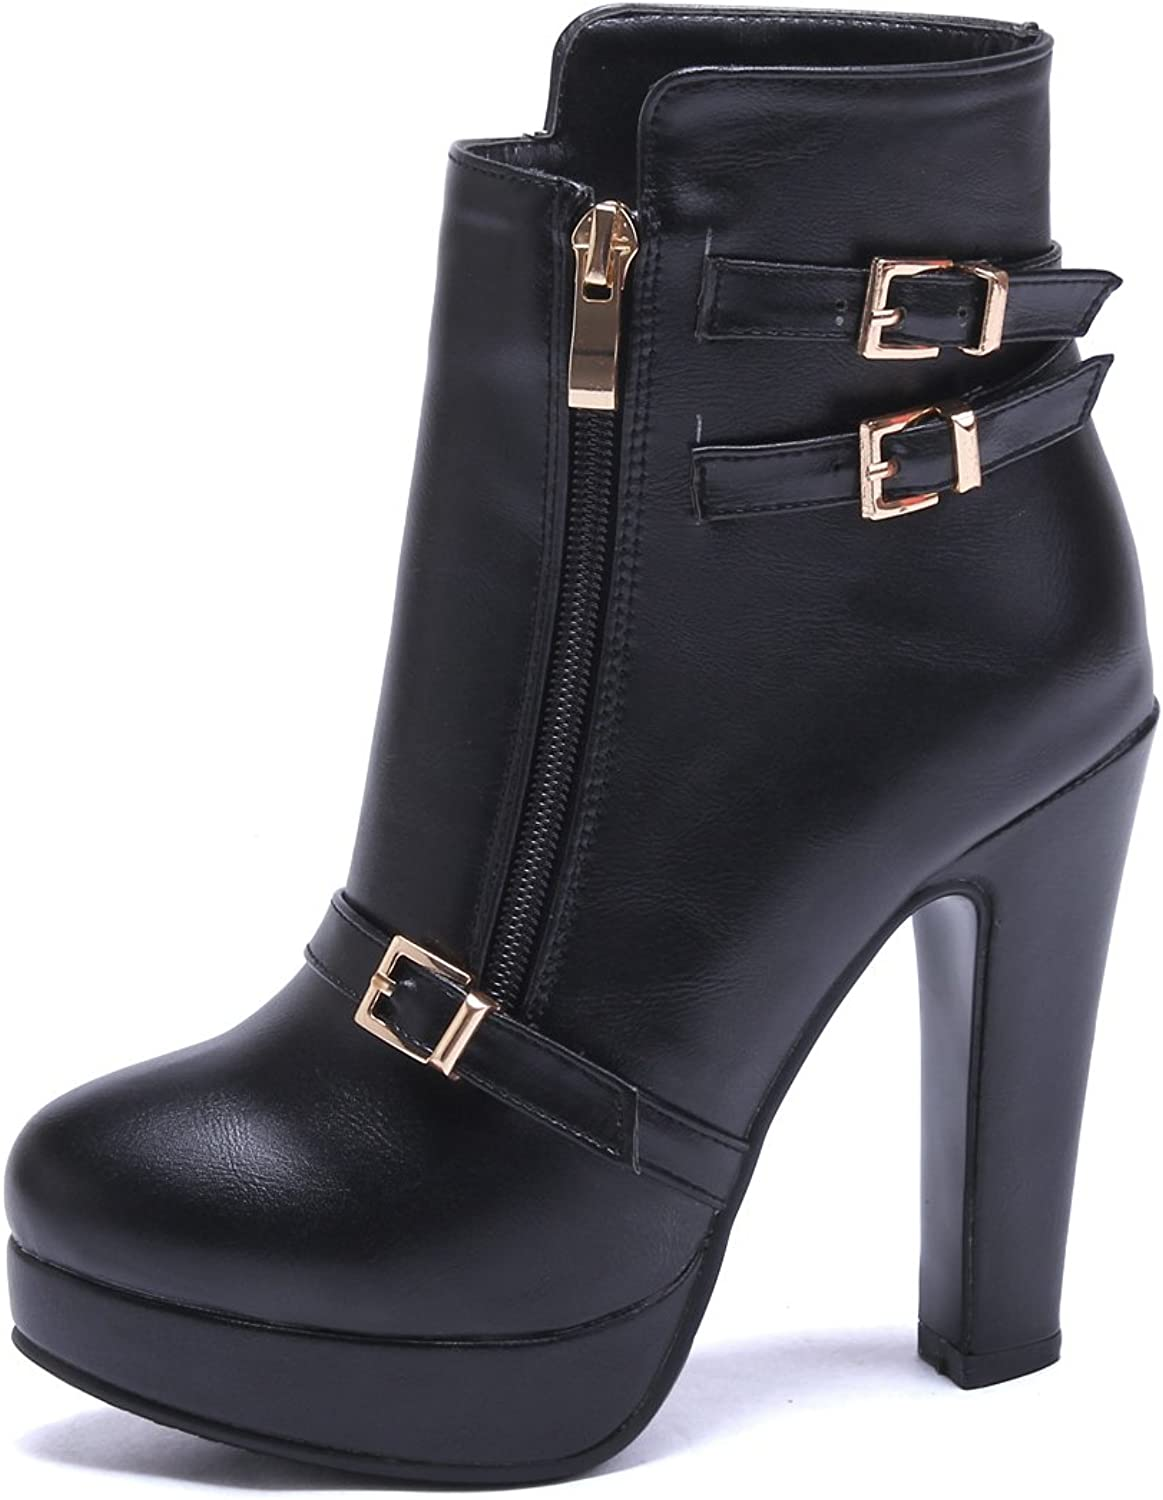 AIWEIYi Womens Buckles High Heel Ankle Boots Booties shoes Black